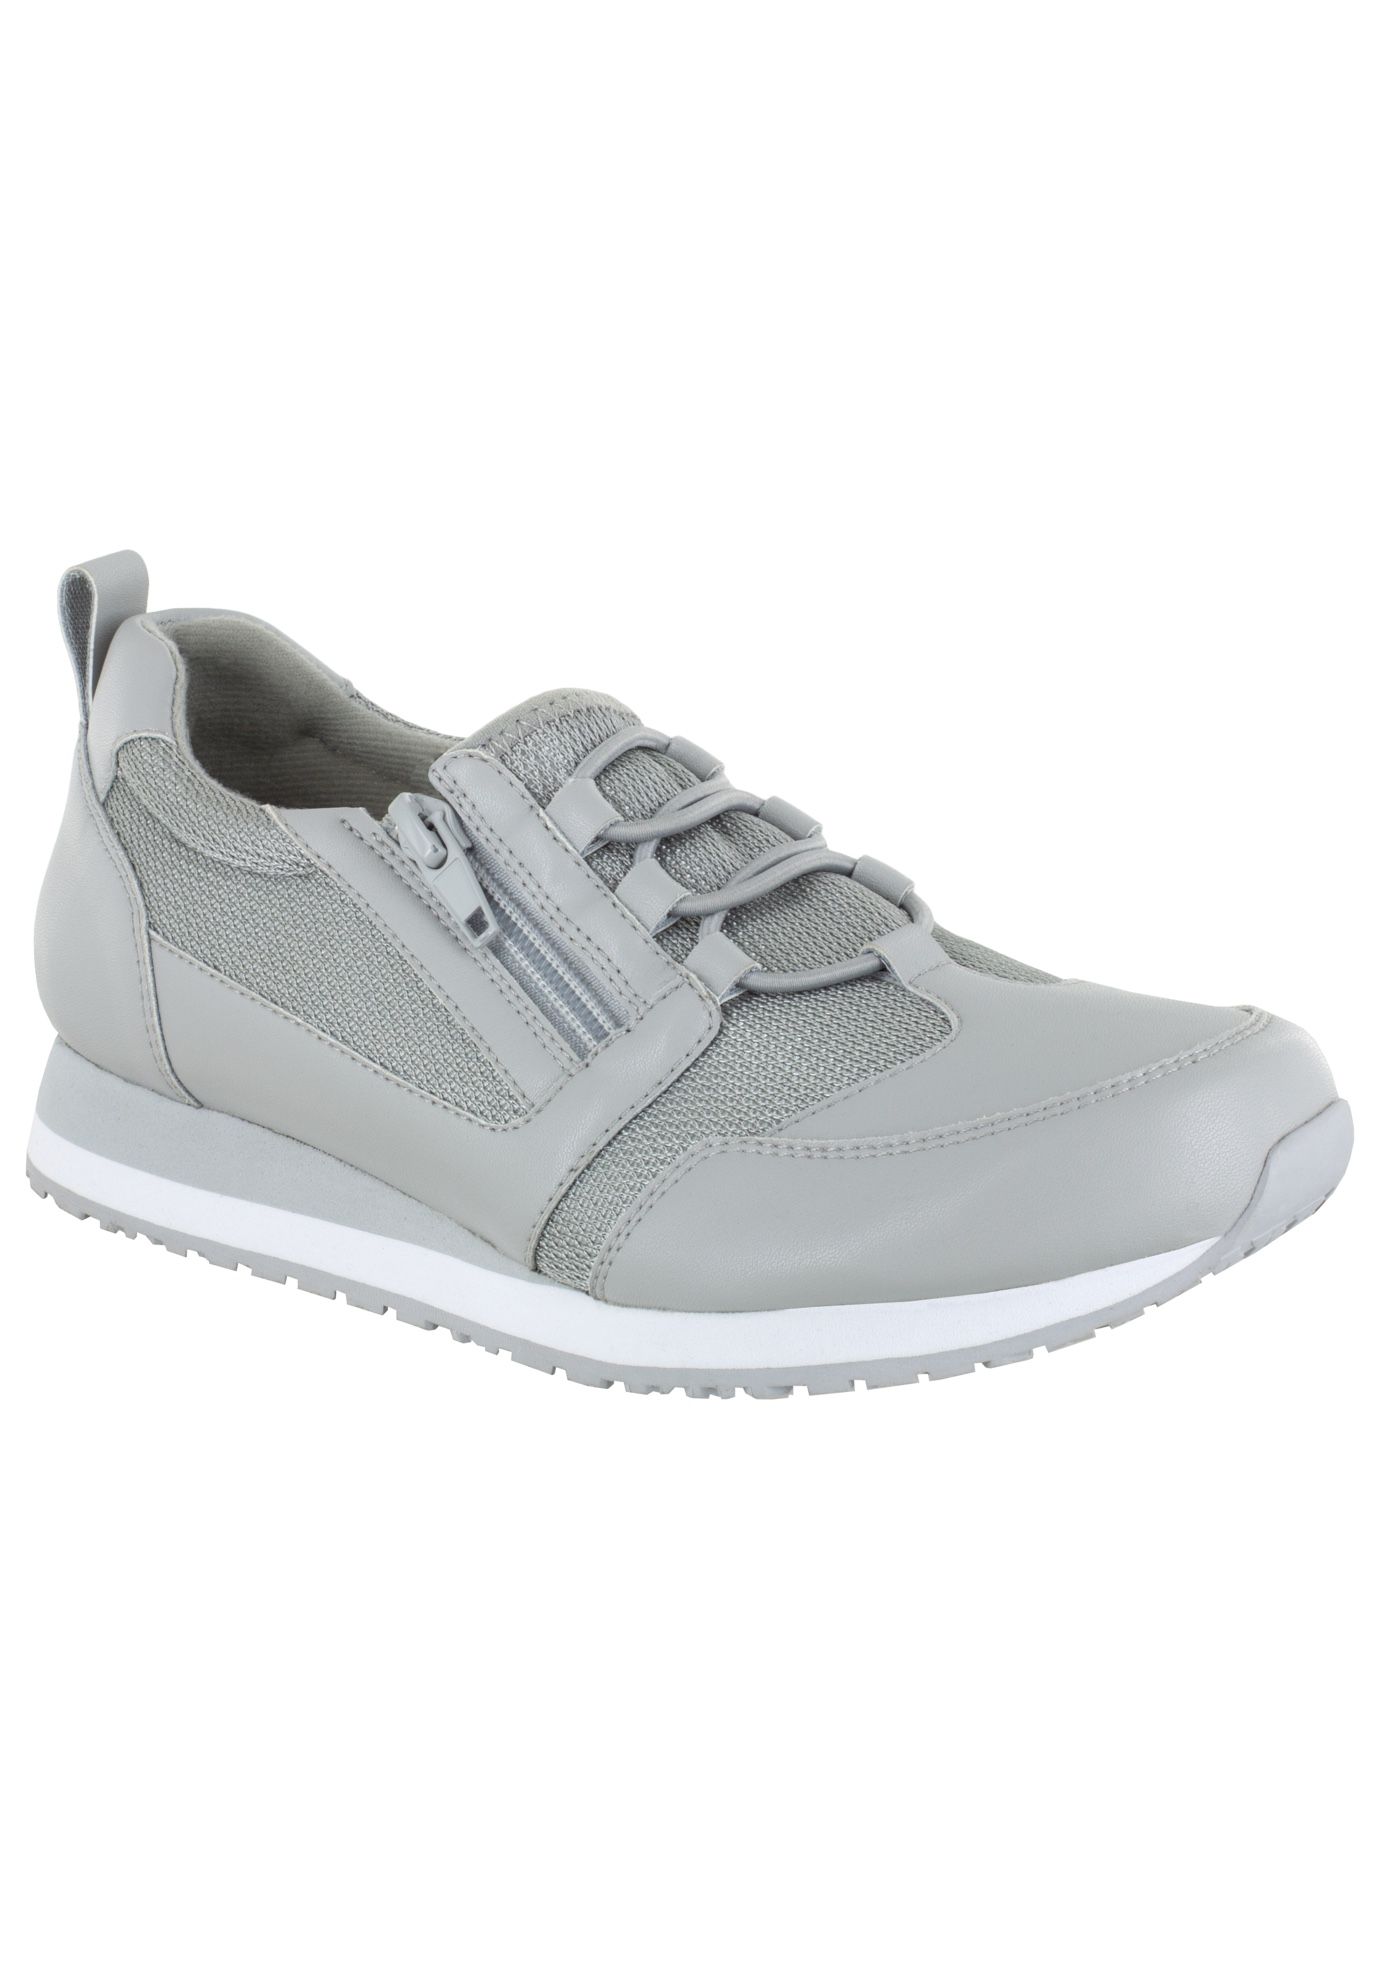 Mckinley Sneakers by Comfort Wave by Easy Street,